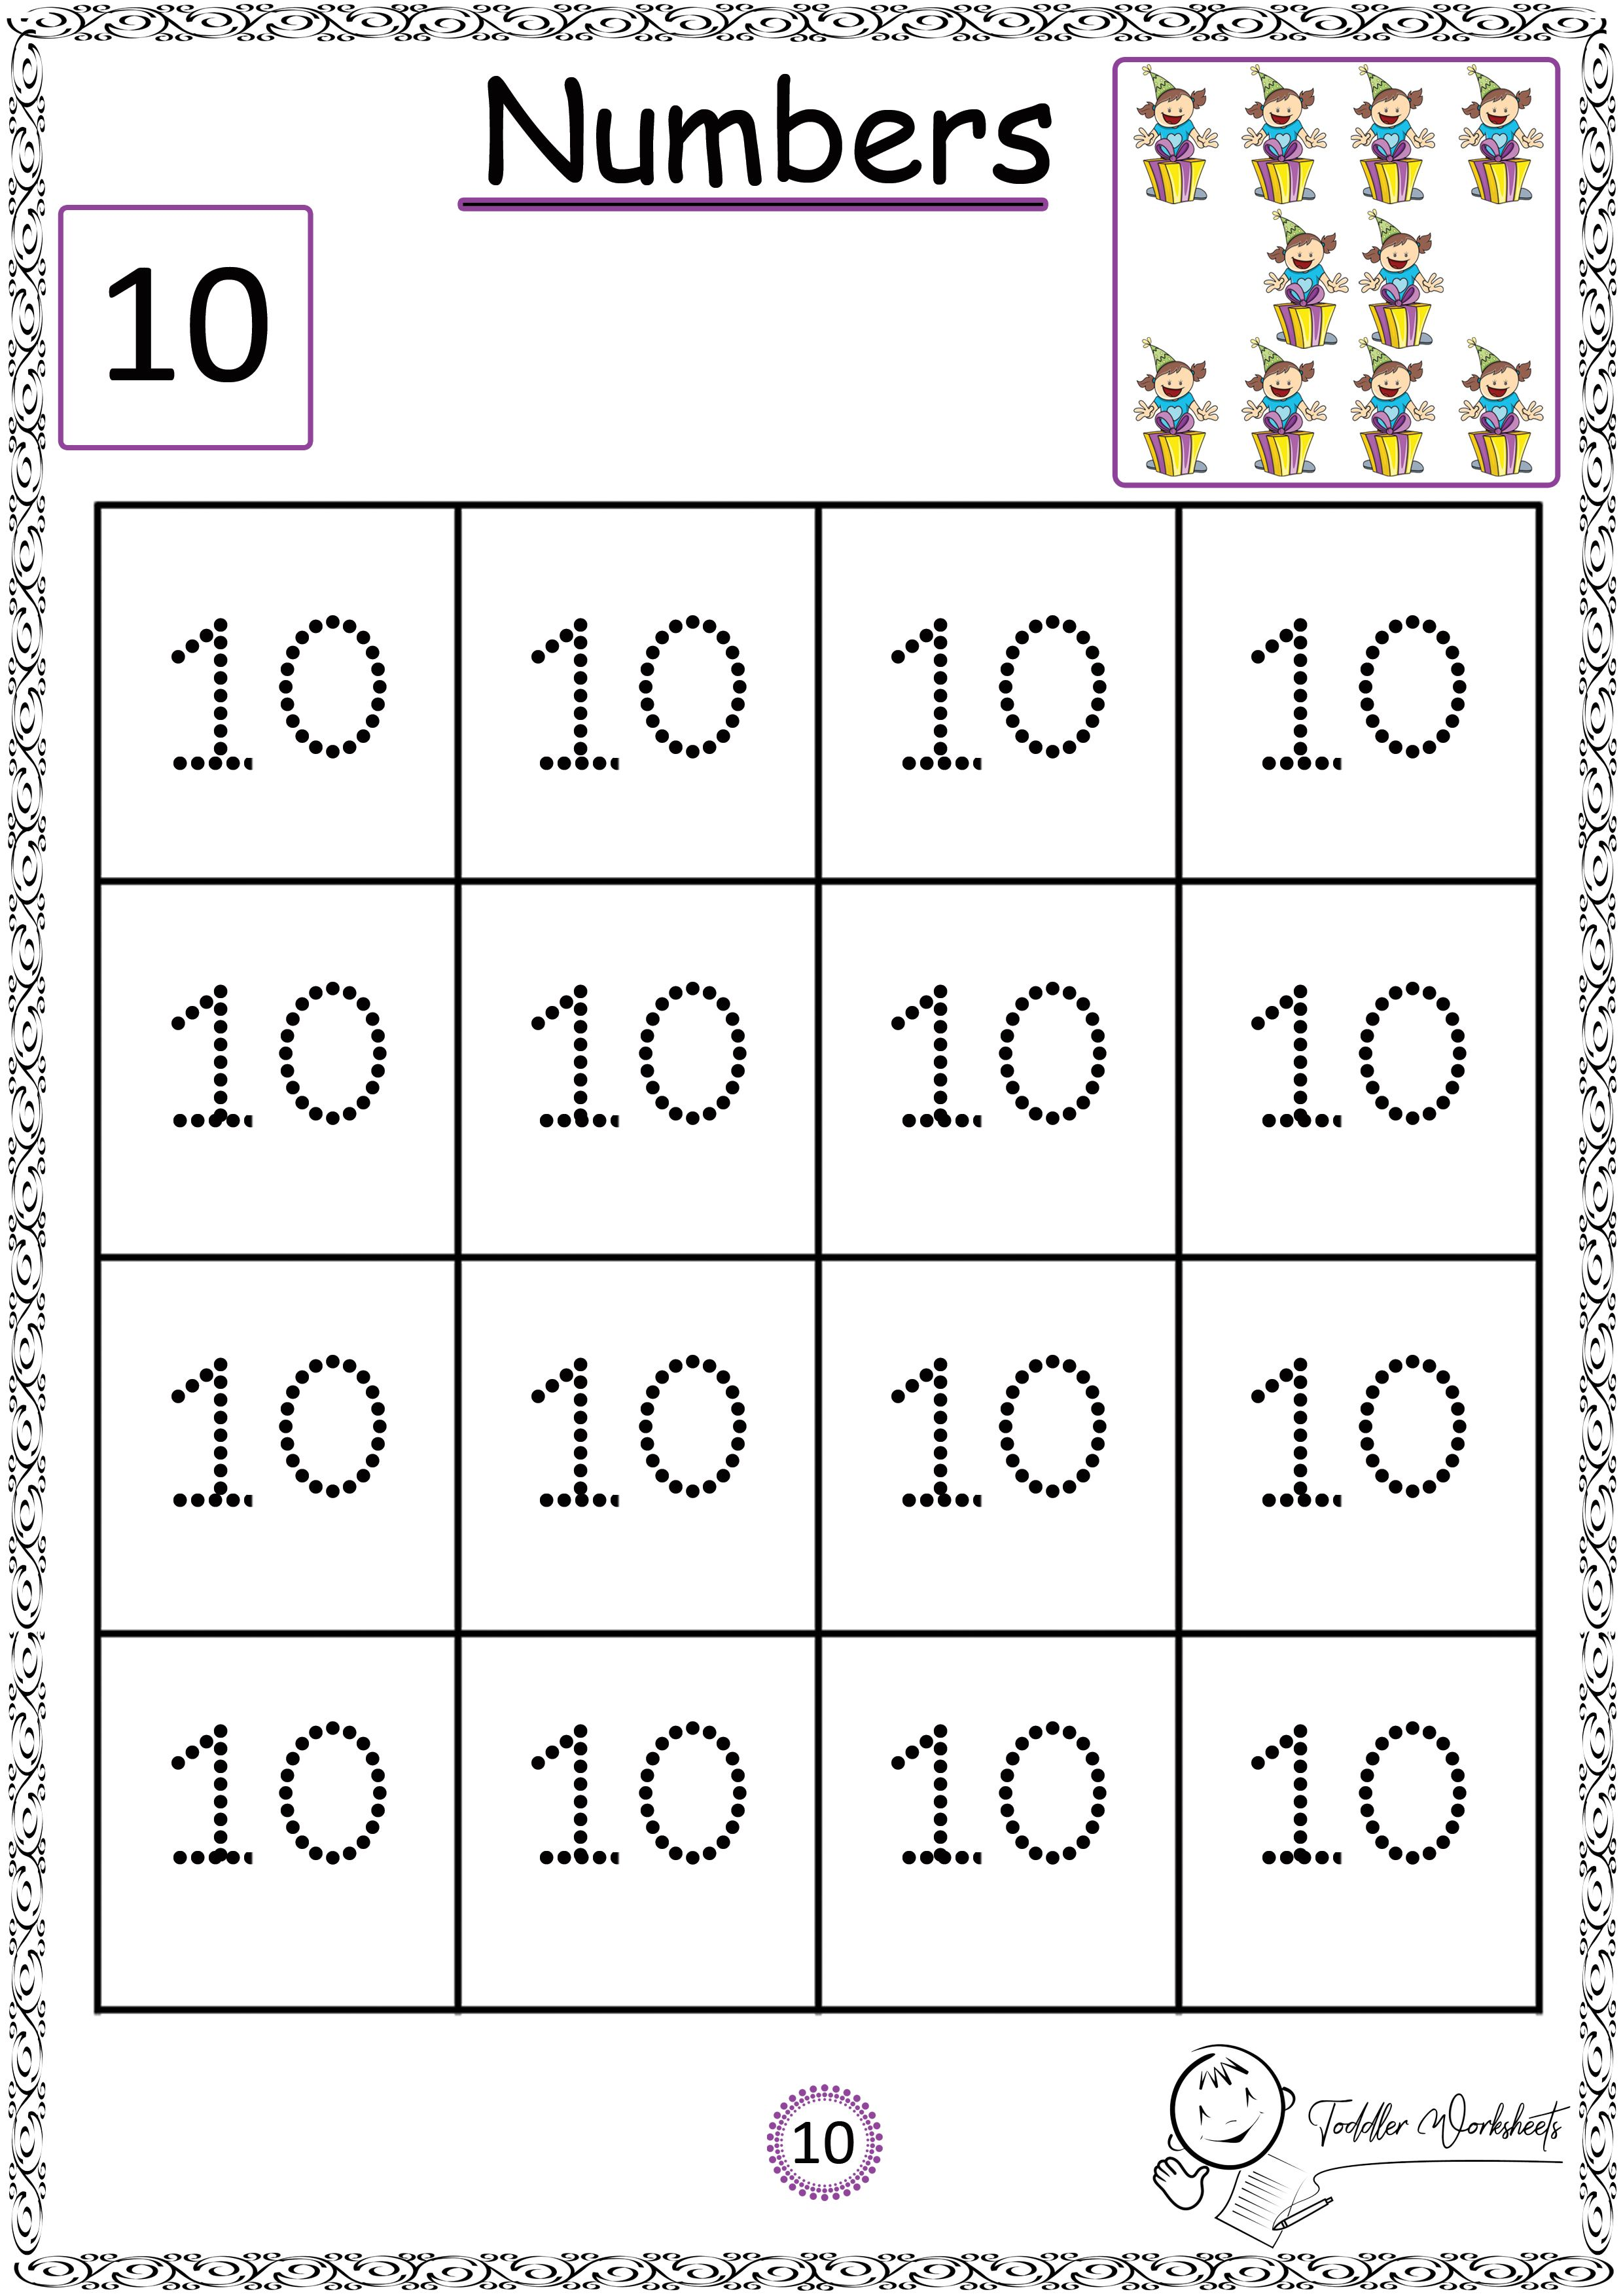 Free Preschool Numbers Worksheets With Images